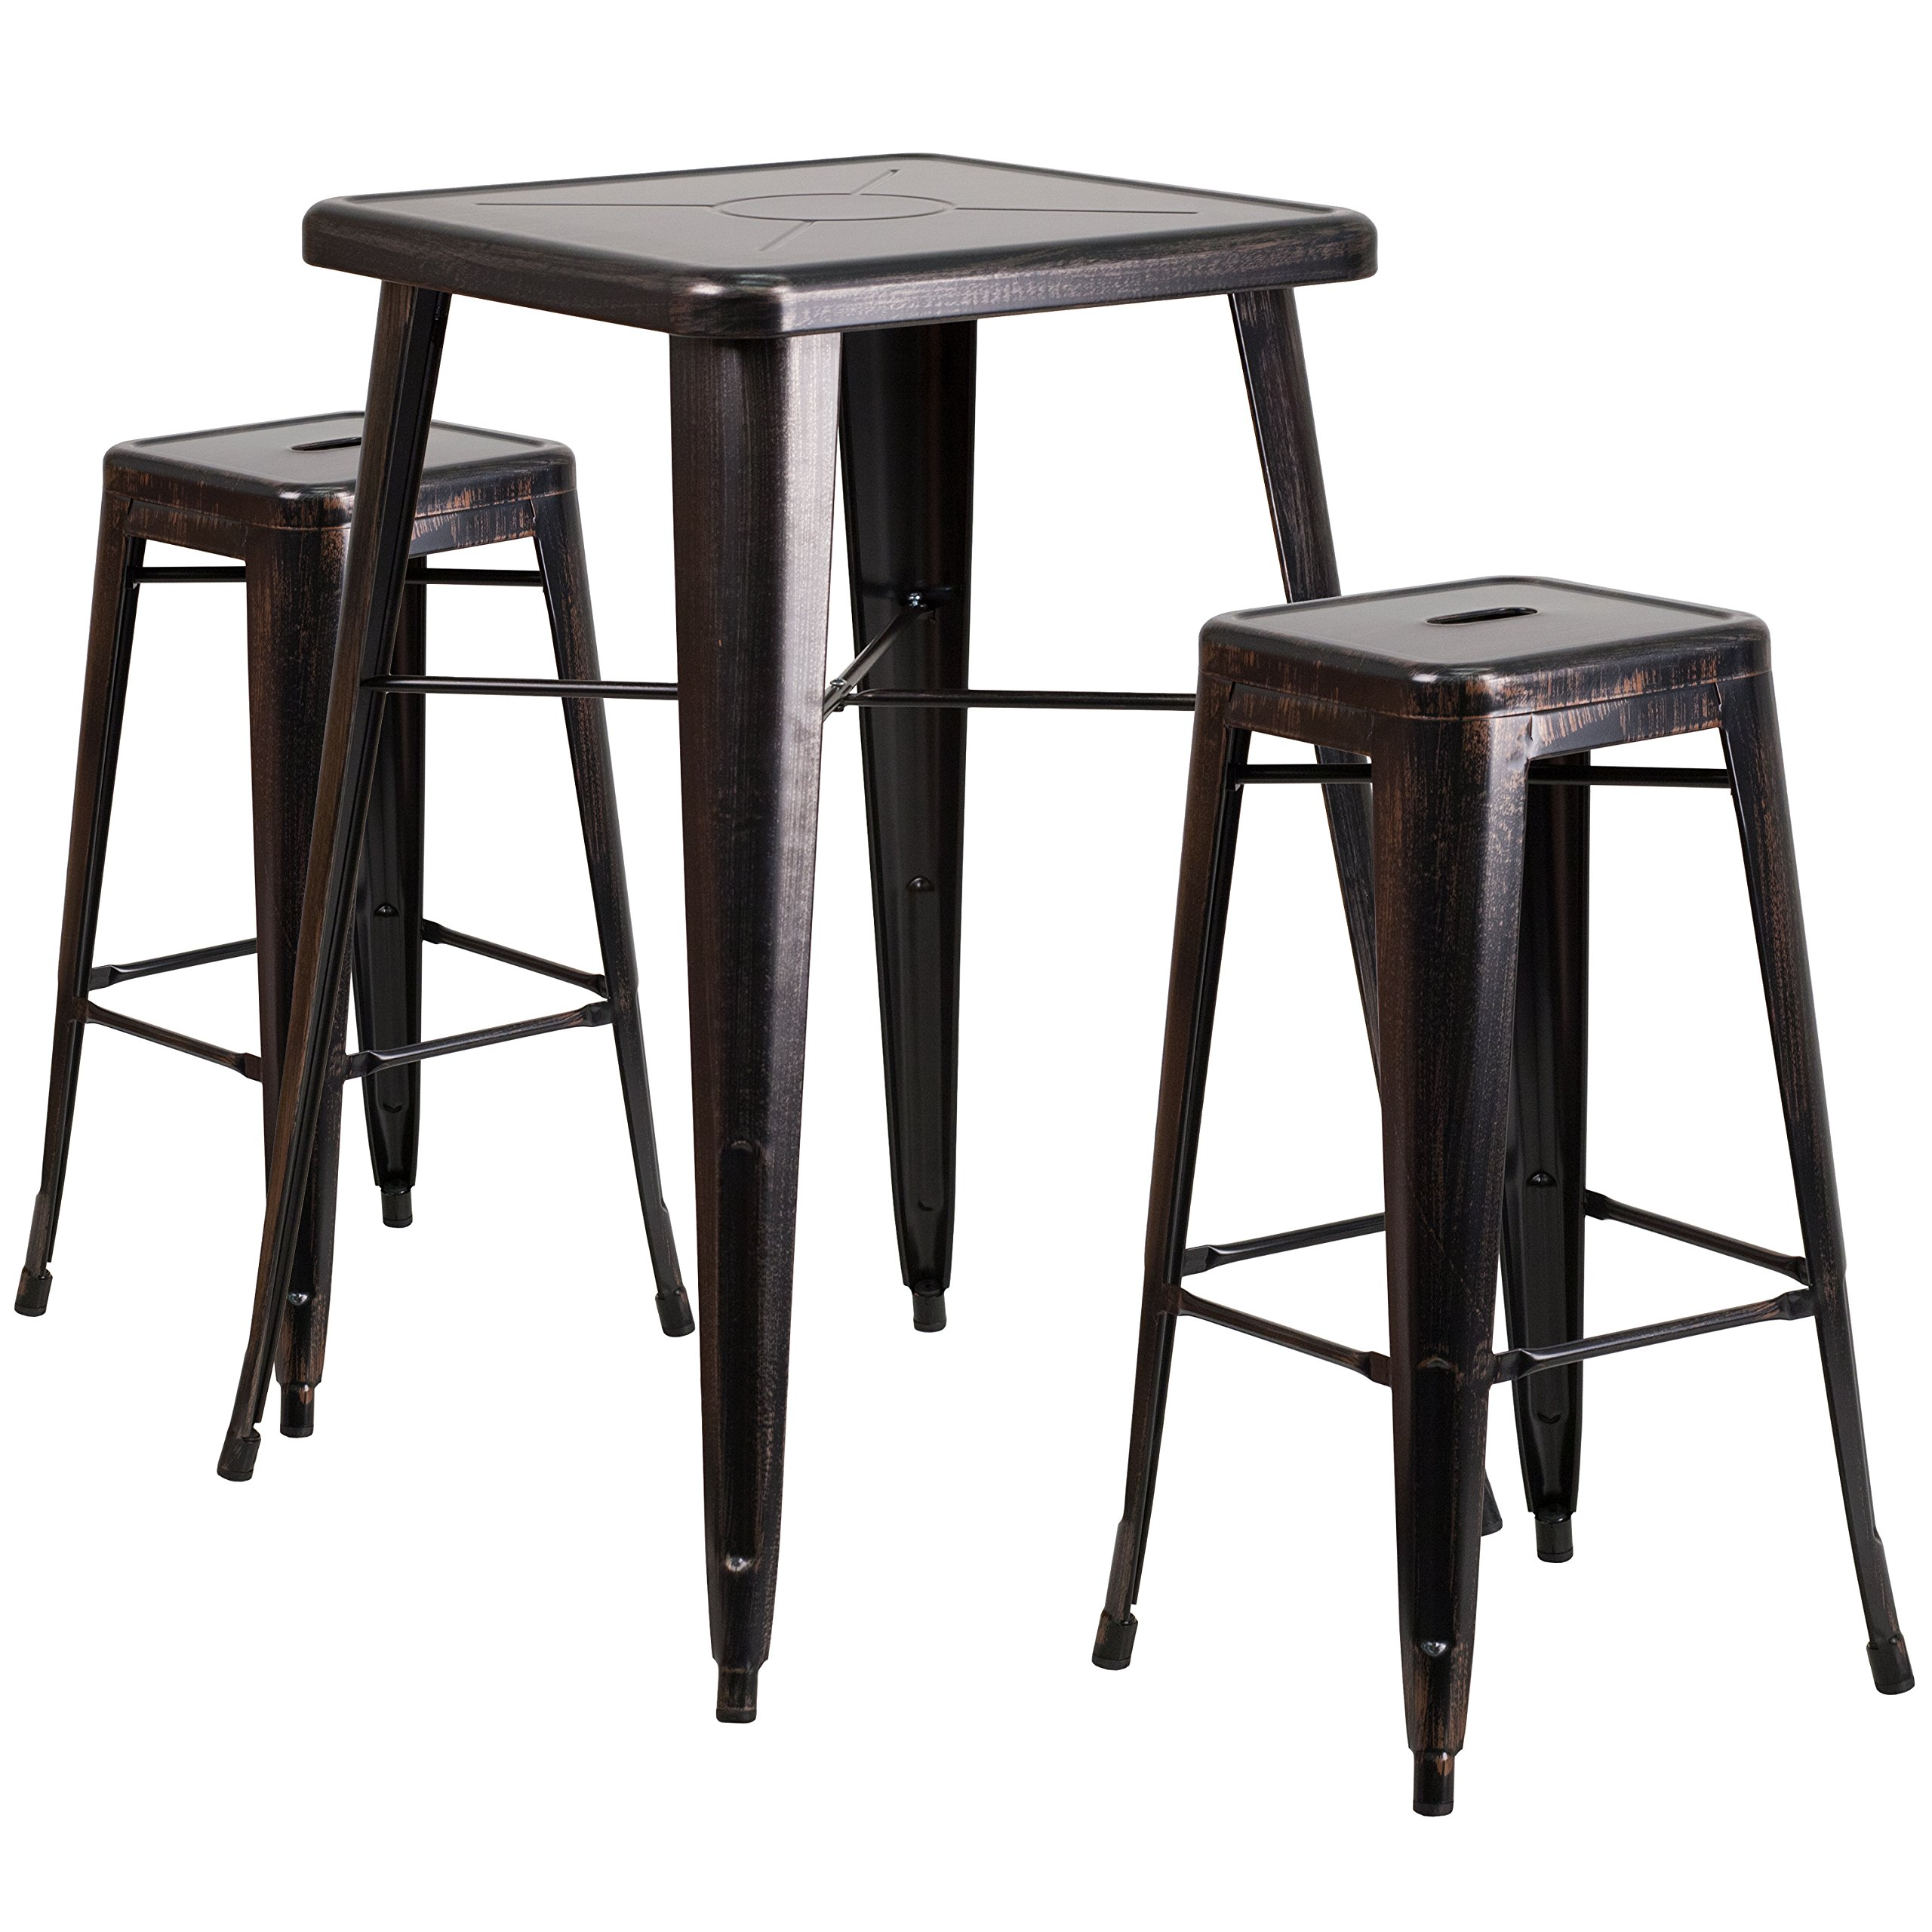 Flash Furniture 23.75'' Square Black-Antique Gold Metal Indoor-Outdoor Bar Table Set with 2 Square Seat Backless Stools